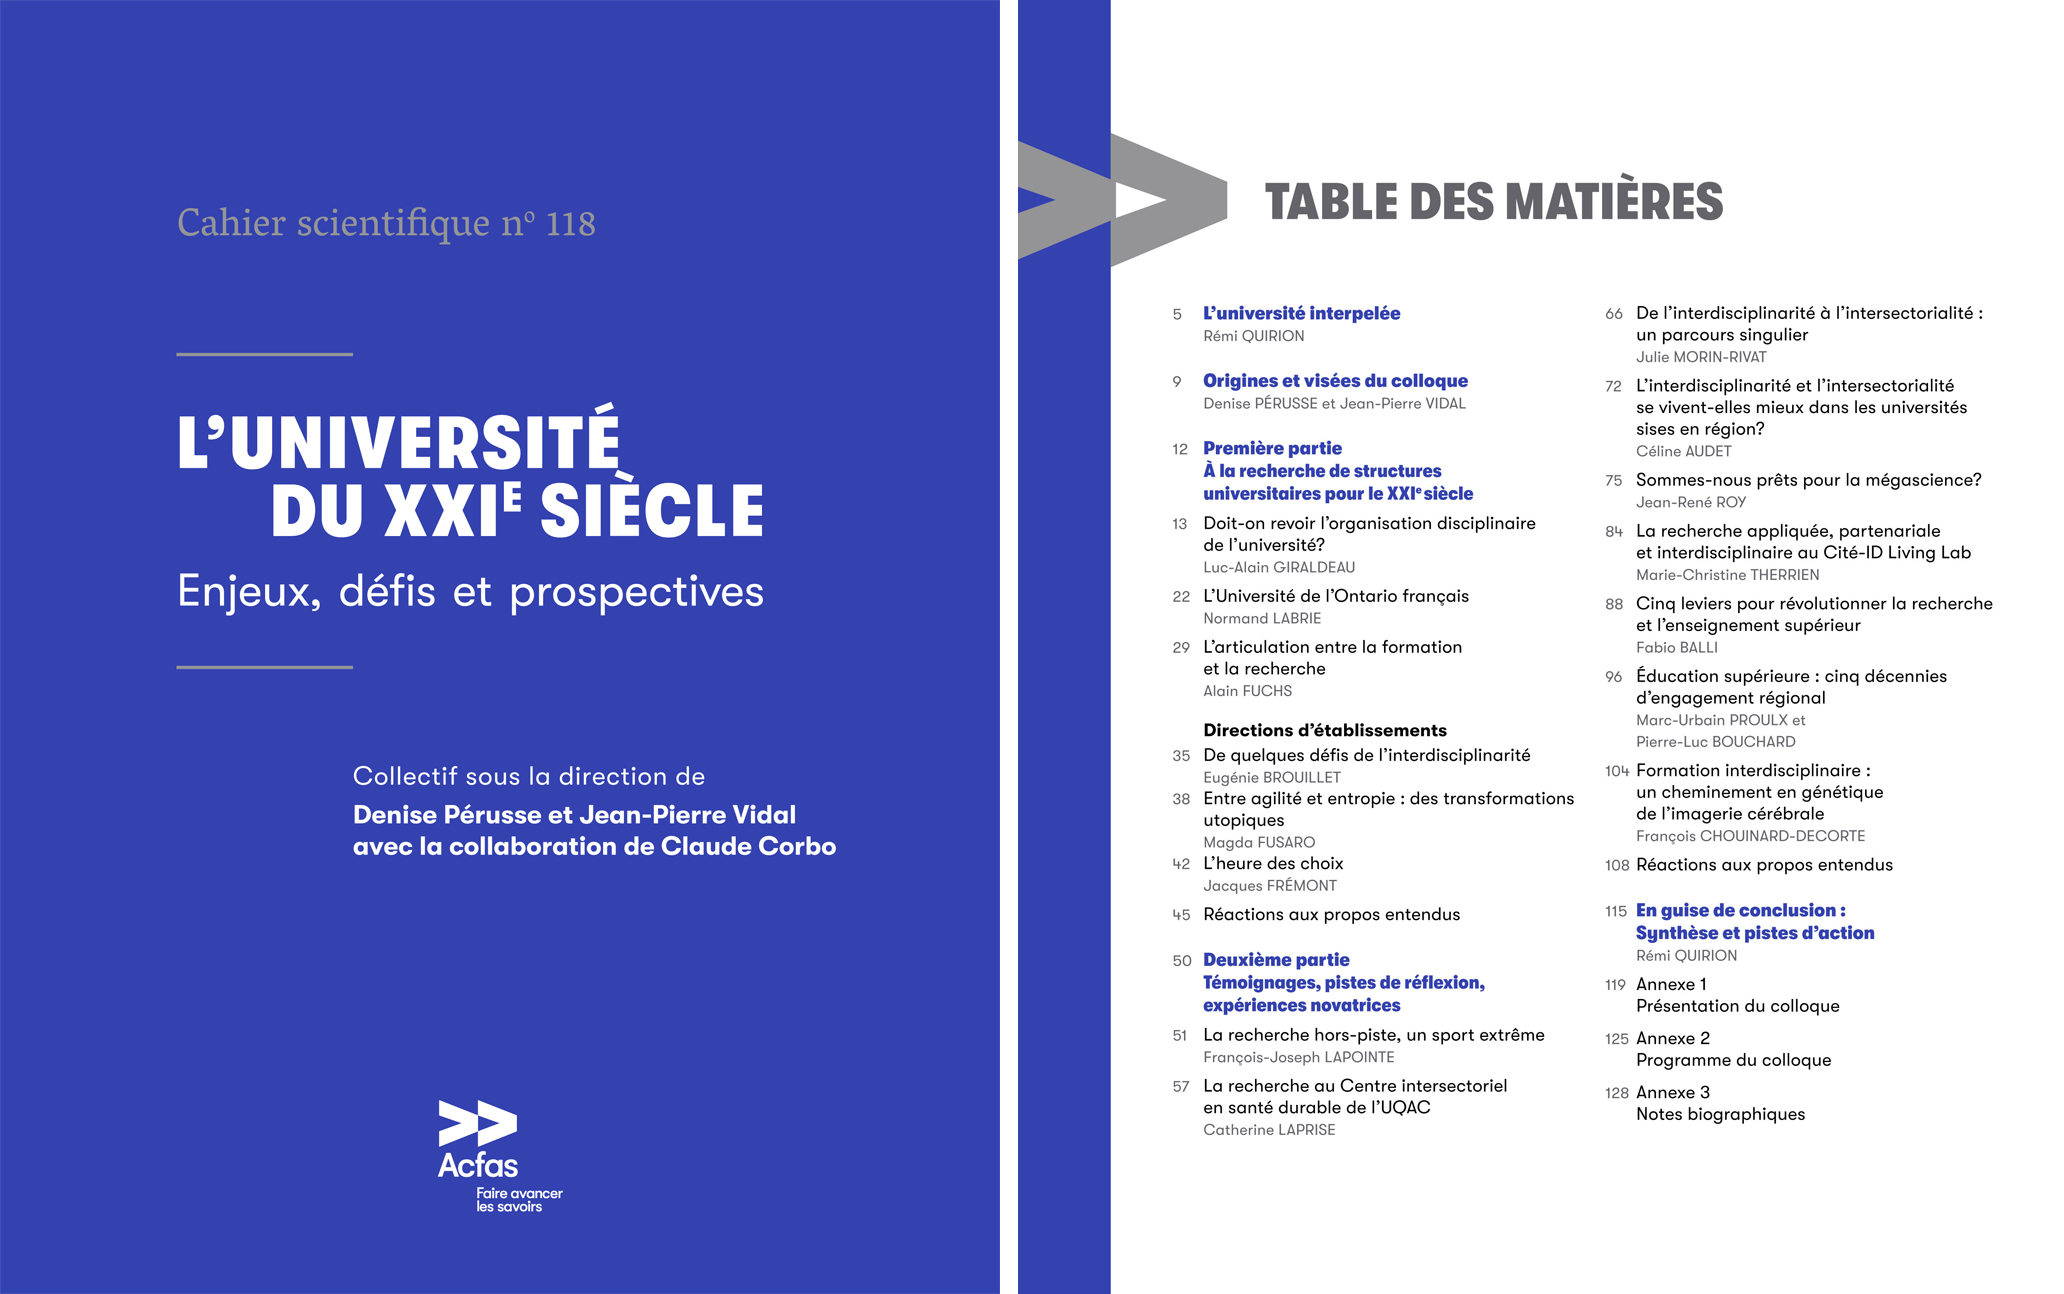 Cahier scientifique 118